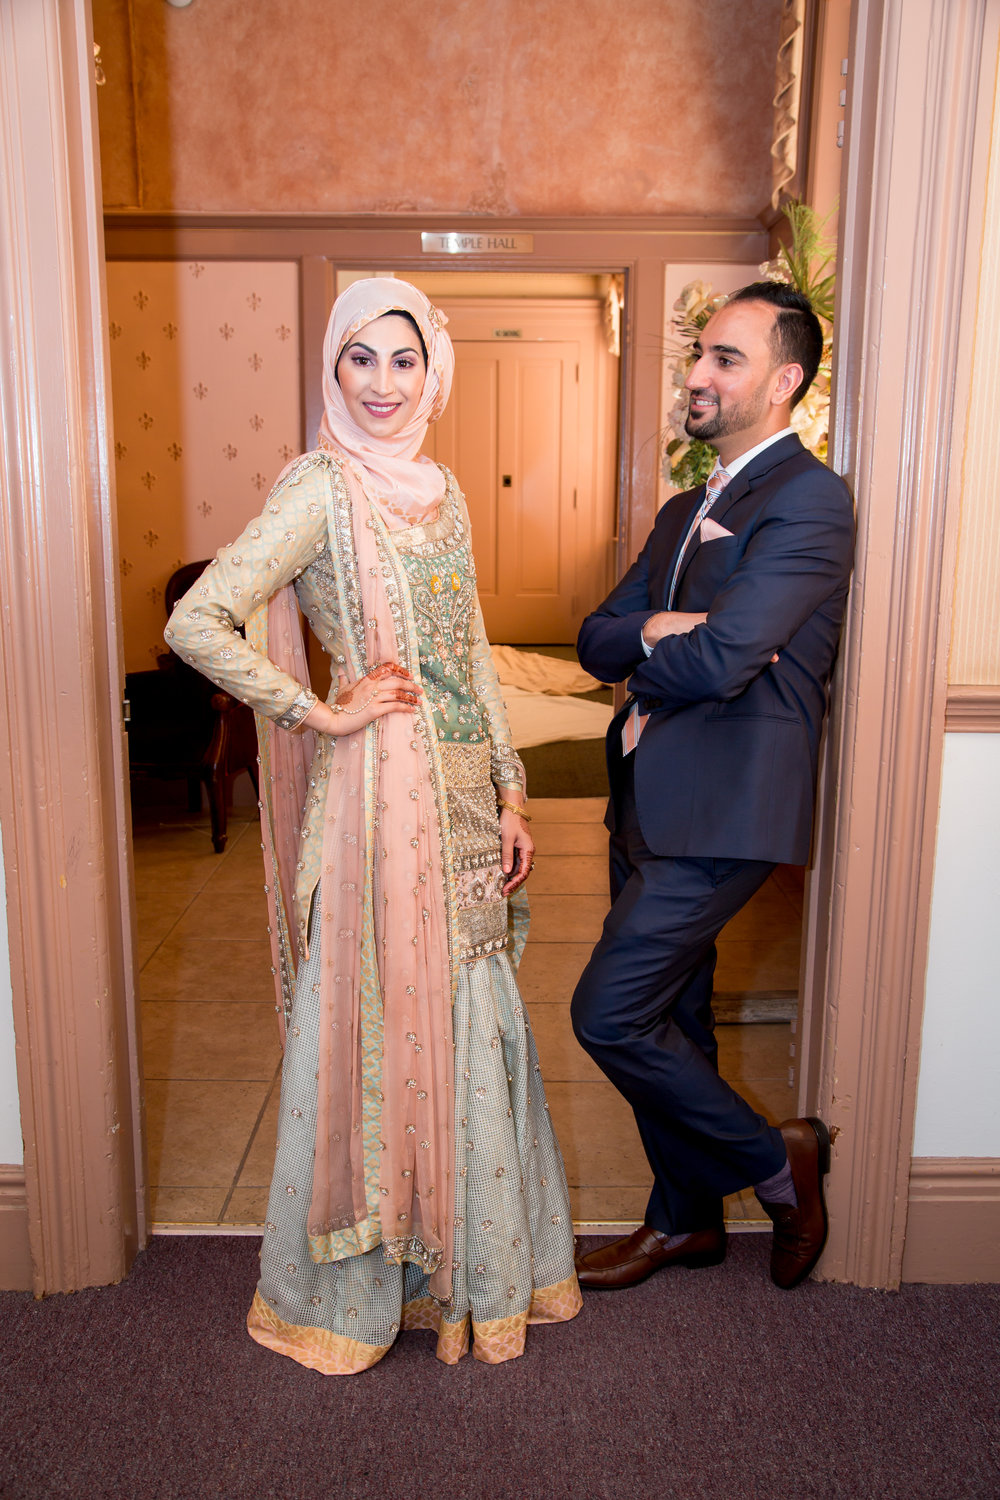 kamal_beverly_hills_bridal_review_testimonial_pakistani_hijab_bride_traditional_elan_karma_faraz_manan_sabyasachi_designer_bridal_buy_usa_custom_order_boutique.jpg